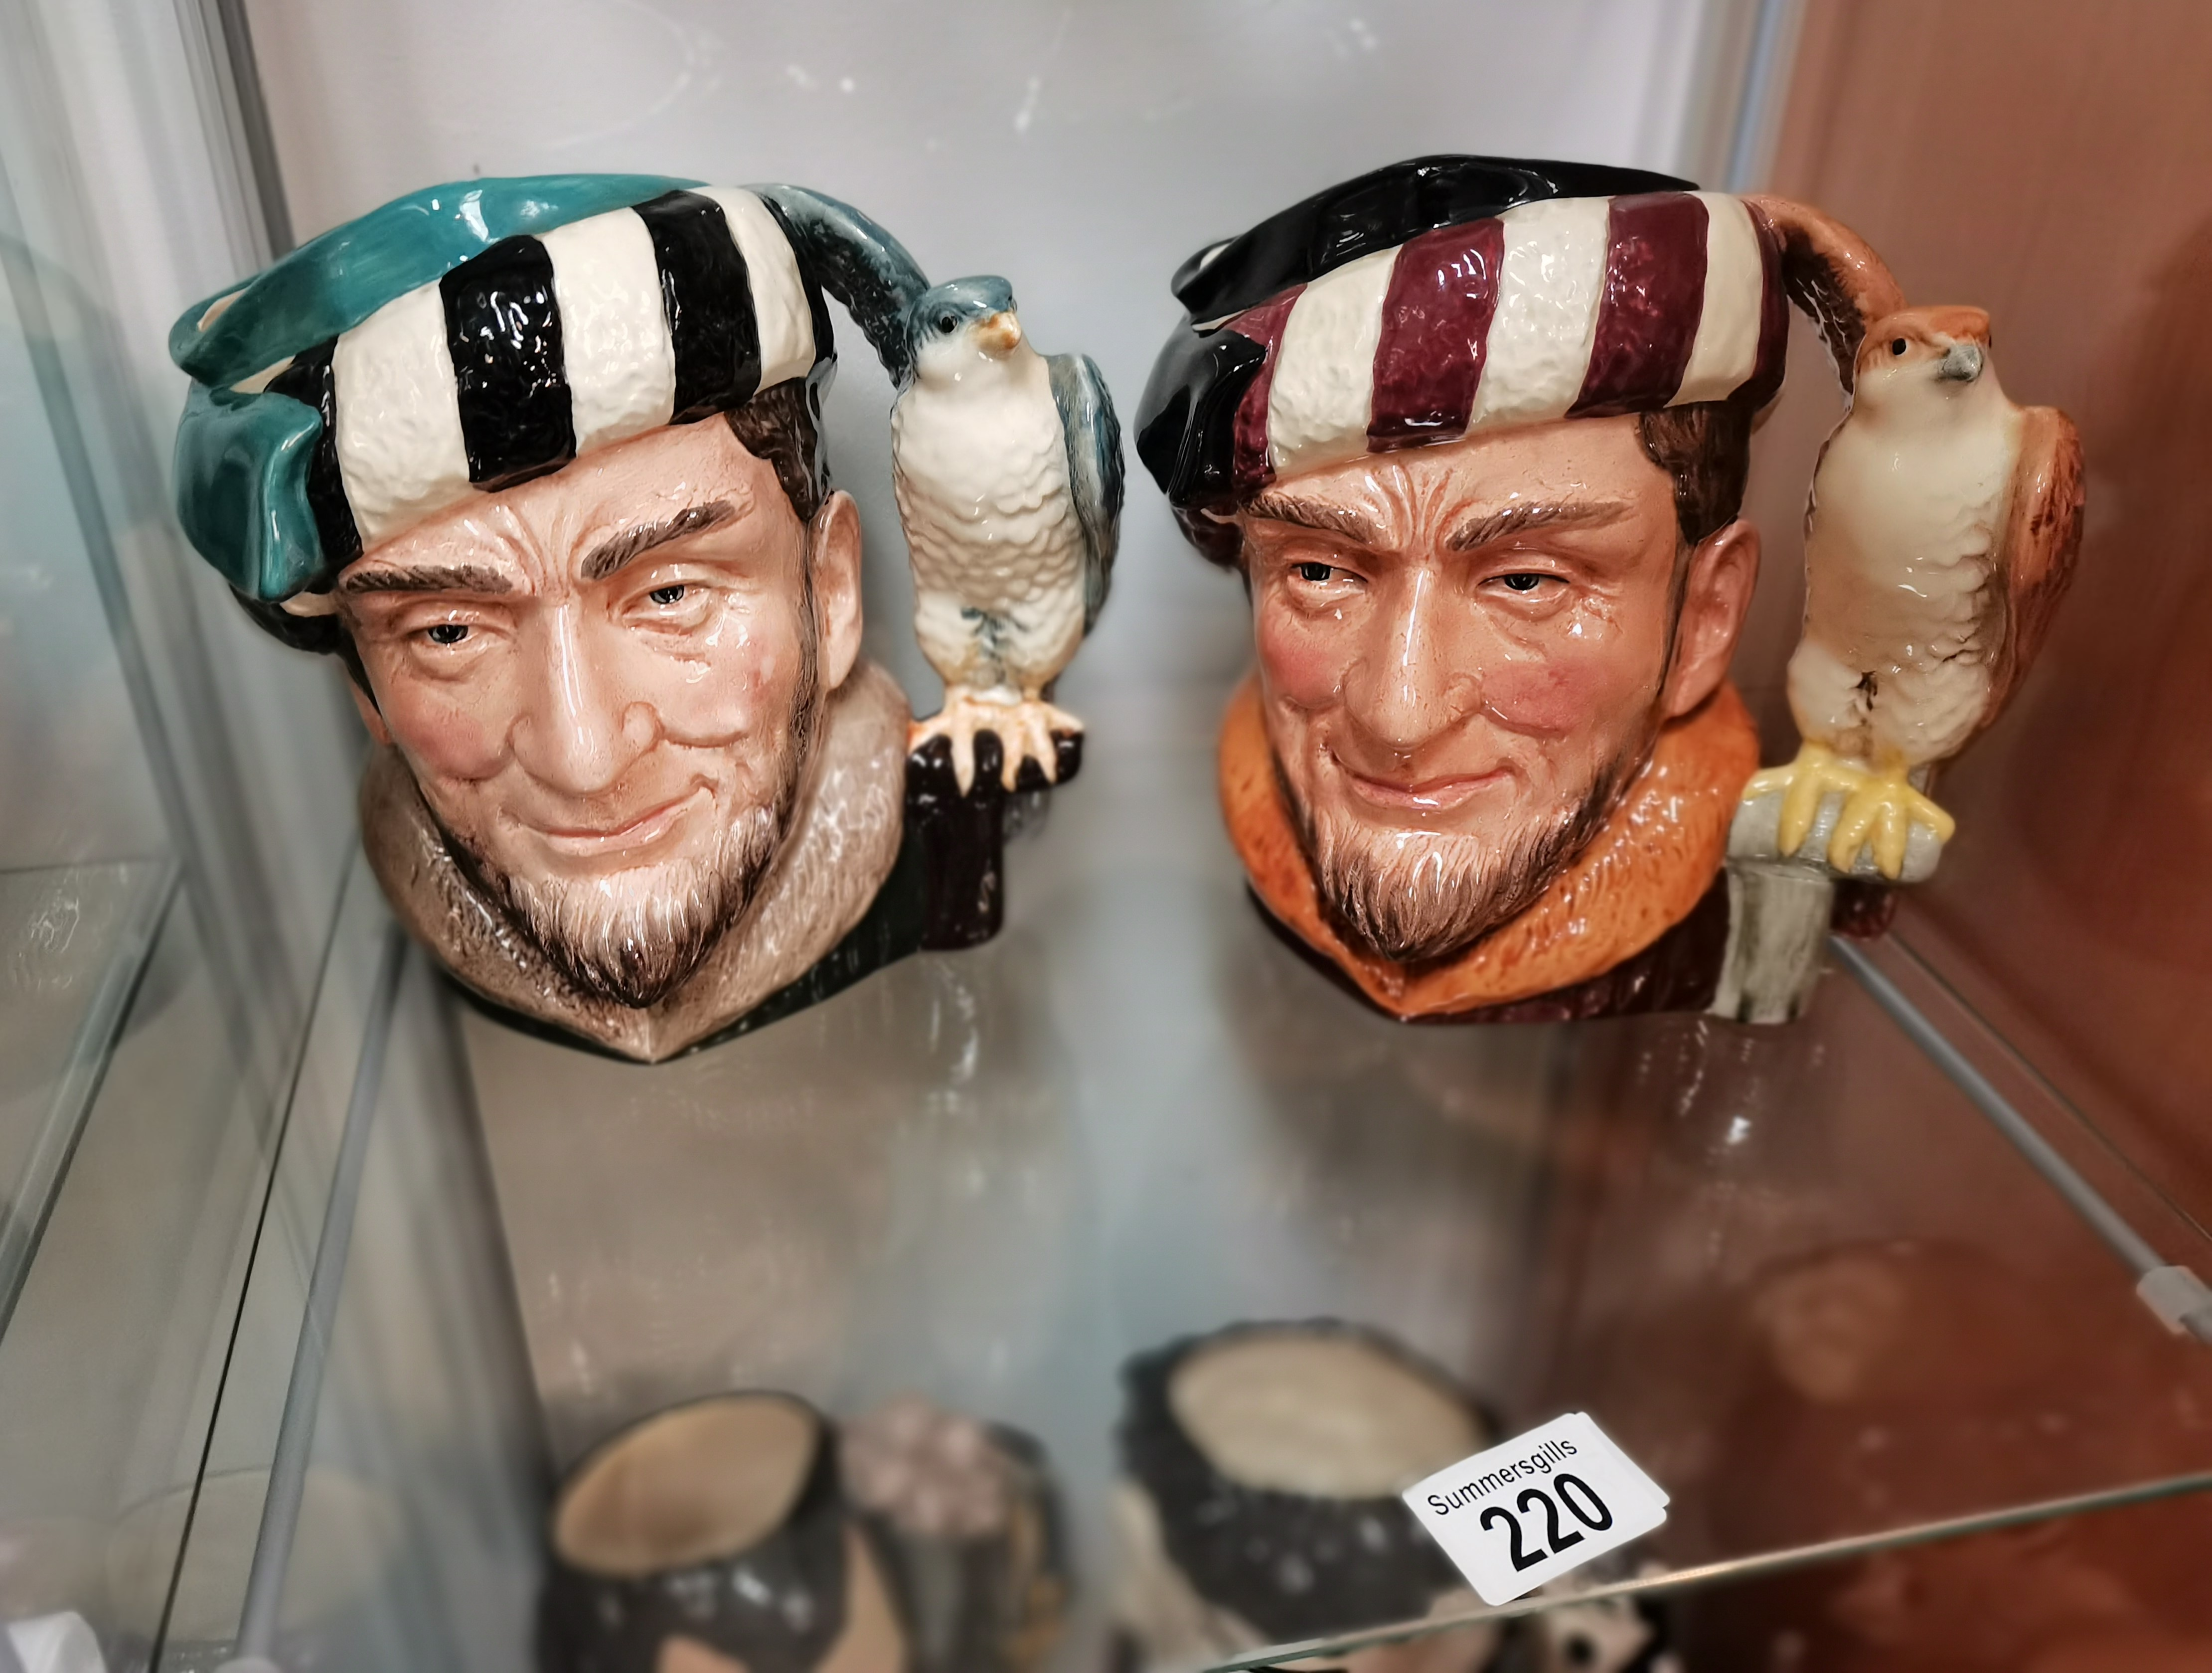 4 Royal Doulton Toby Jugs: 2x The falconer no,s D6800 and D6533 1x Issak Walton no. D 6404 and The - Image 2 of 2